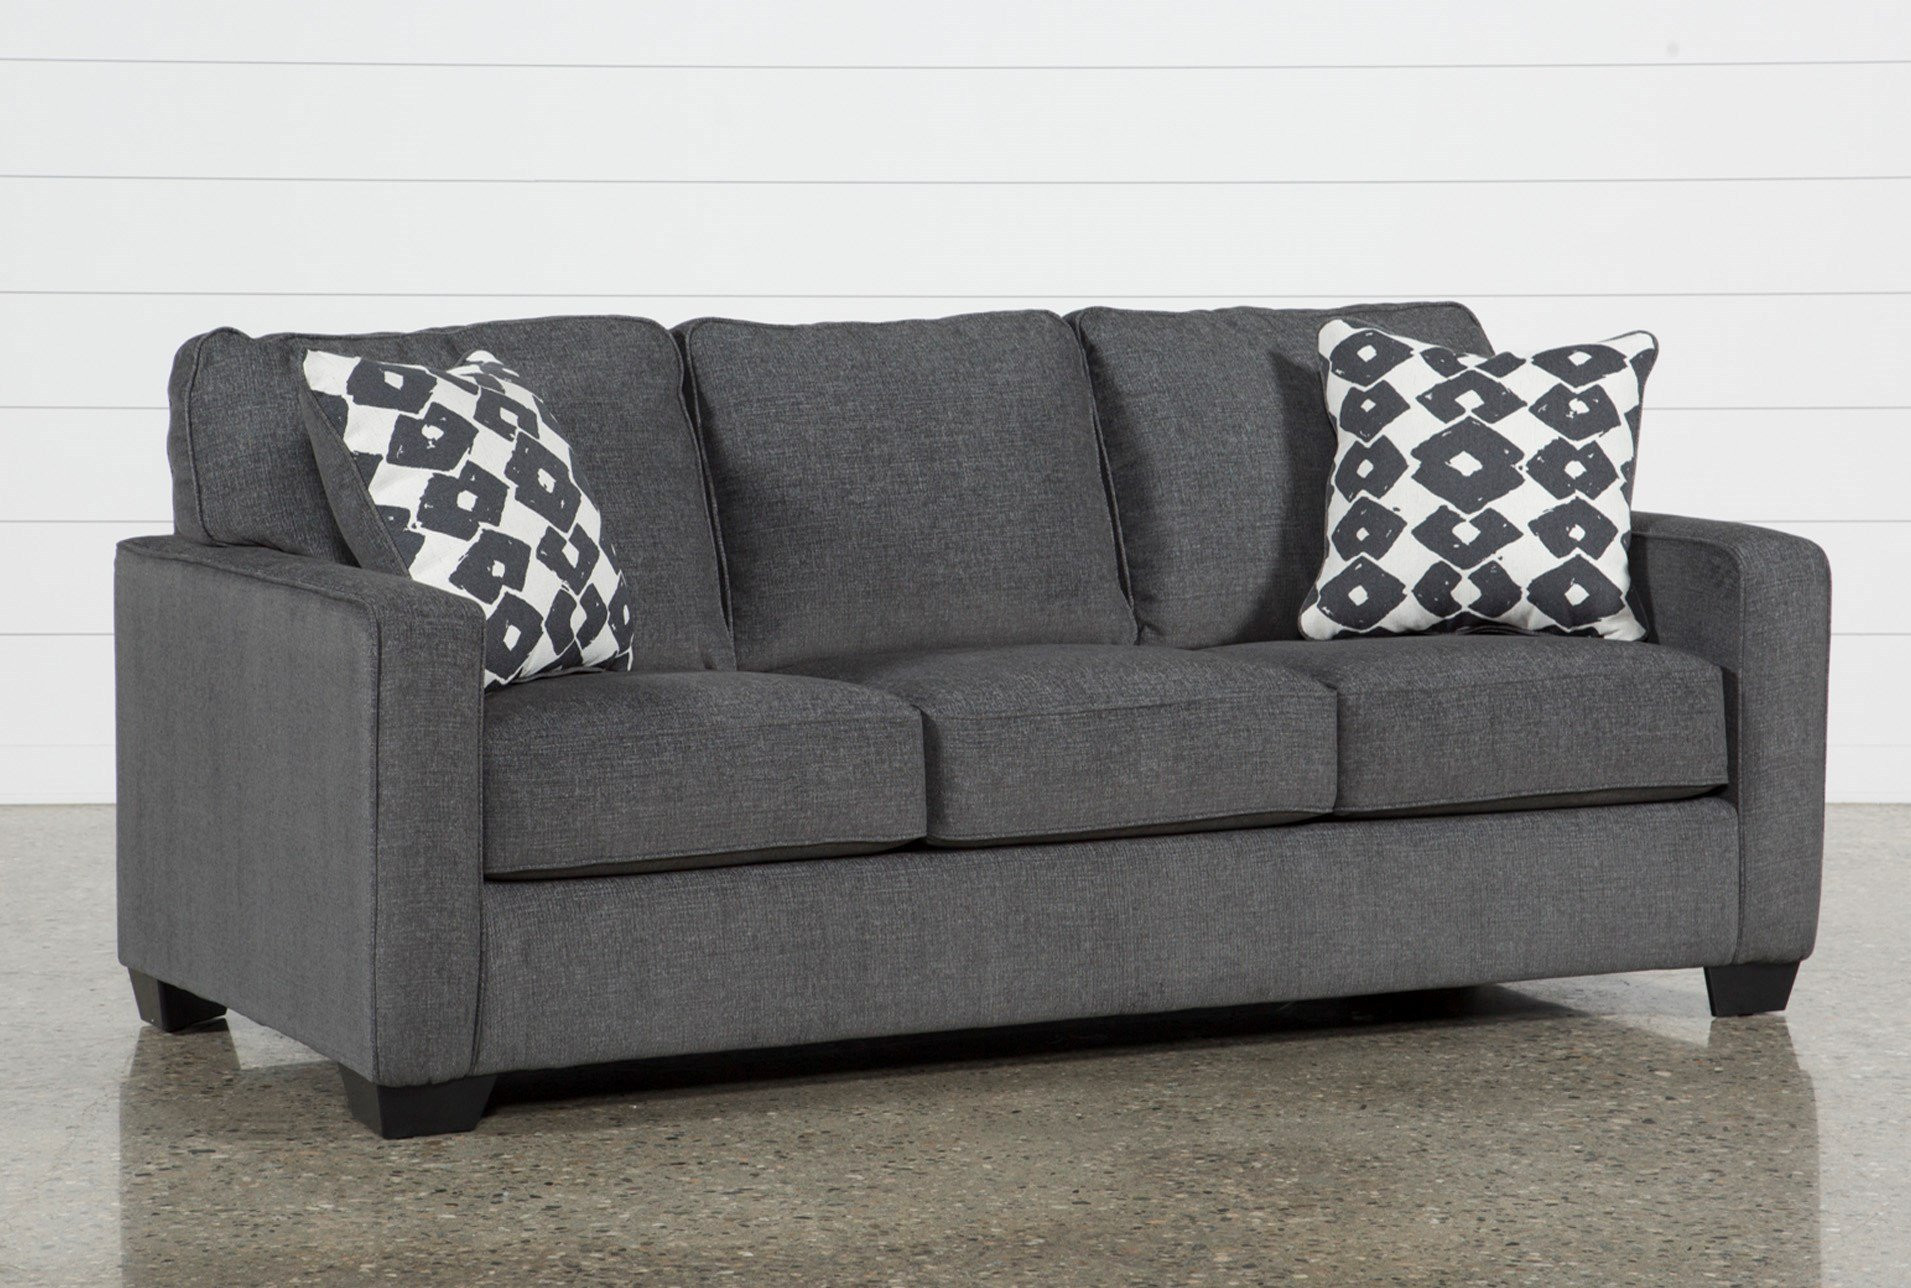 Best ideas about Sectional Sleeper Sofa Queen . Save or Pin Turdur Queen Sofa Sleeper Now.